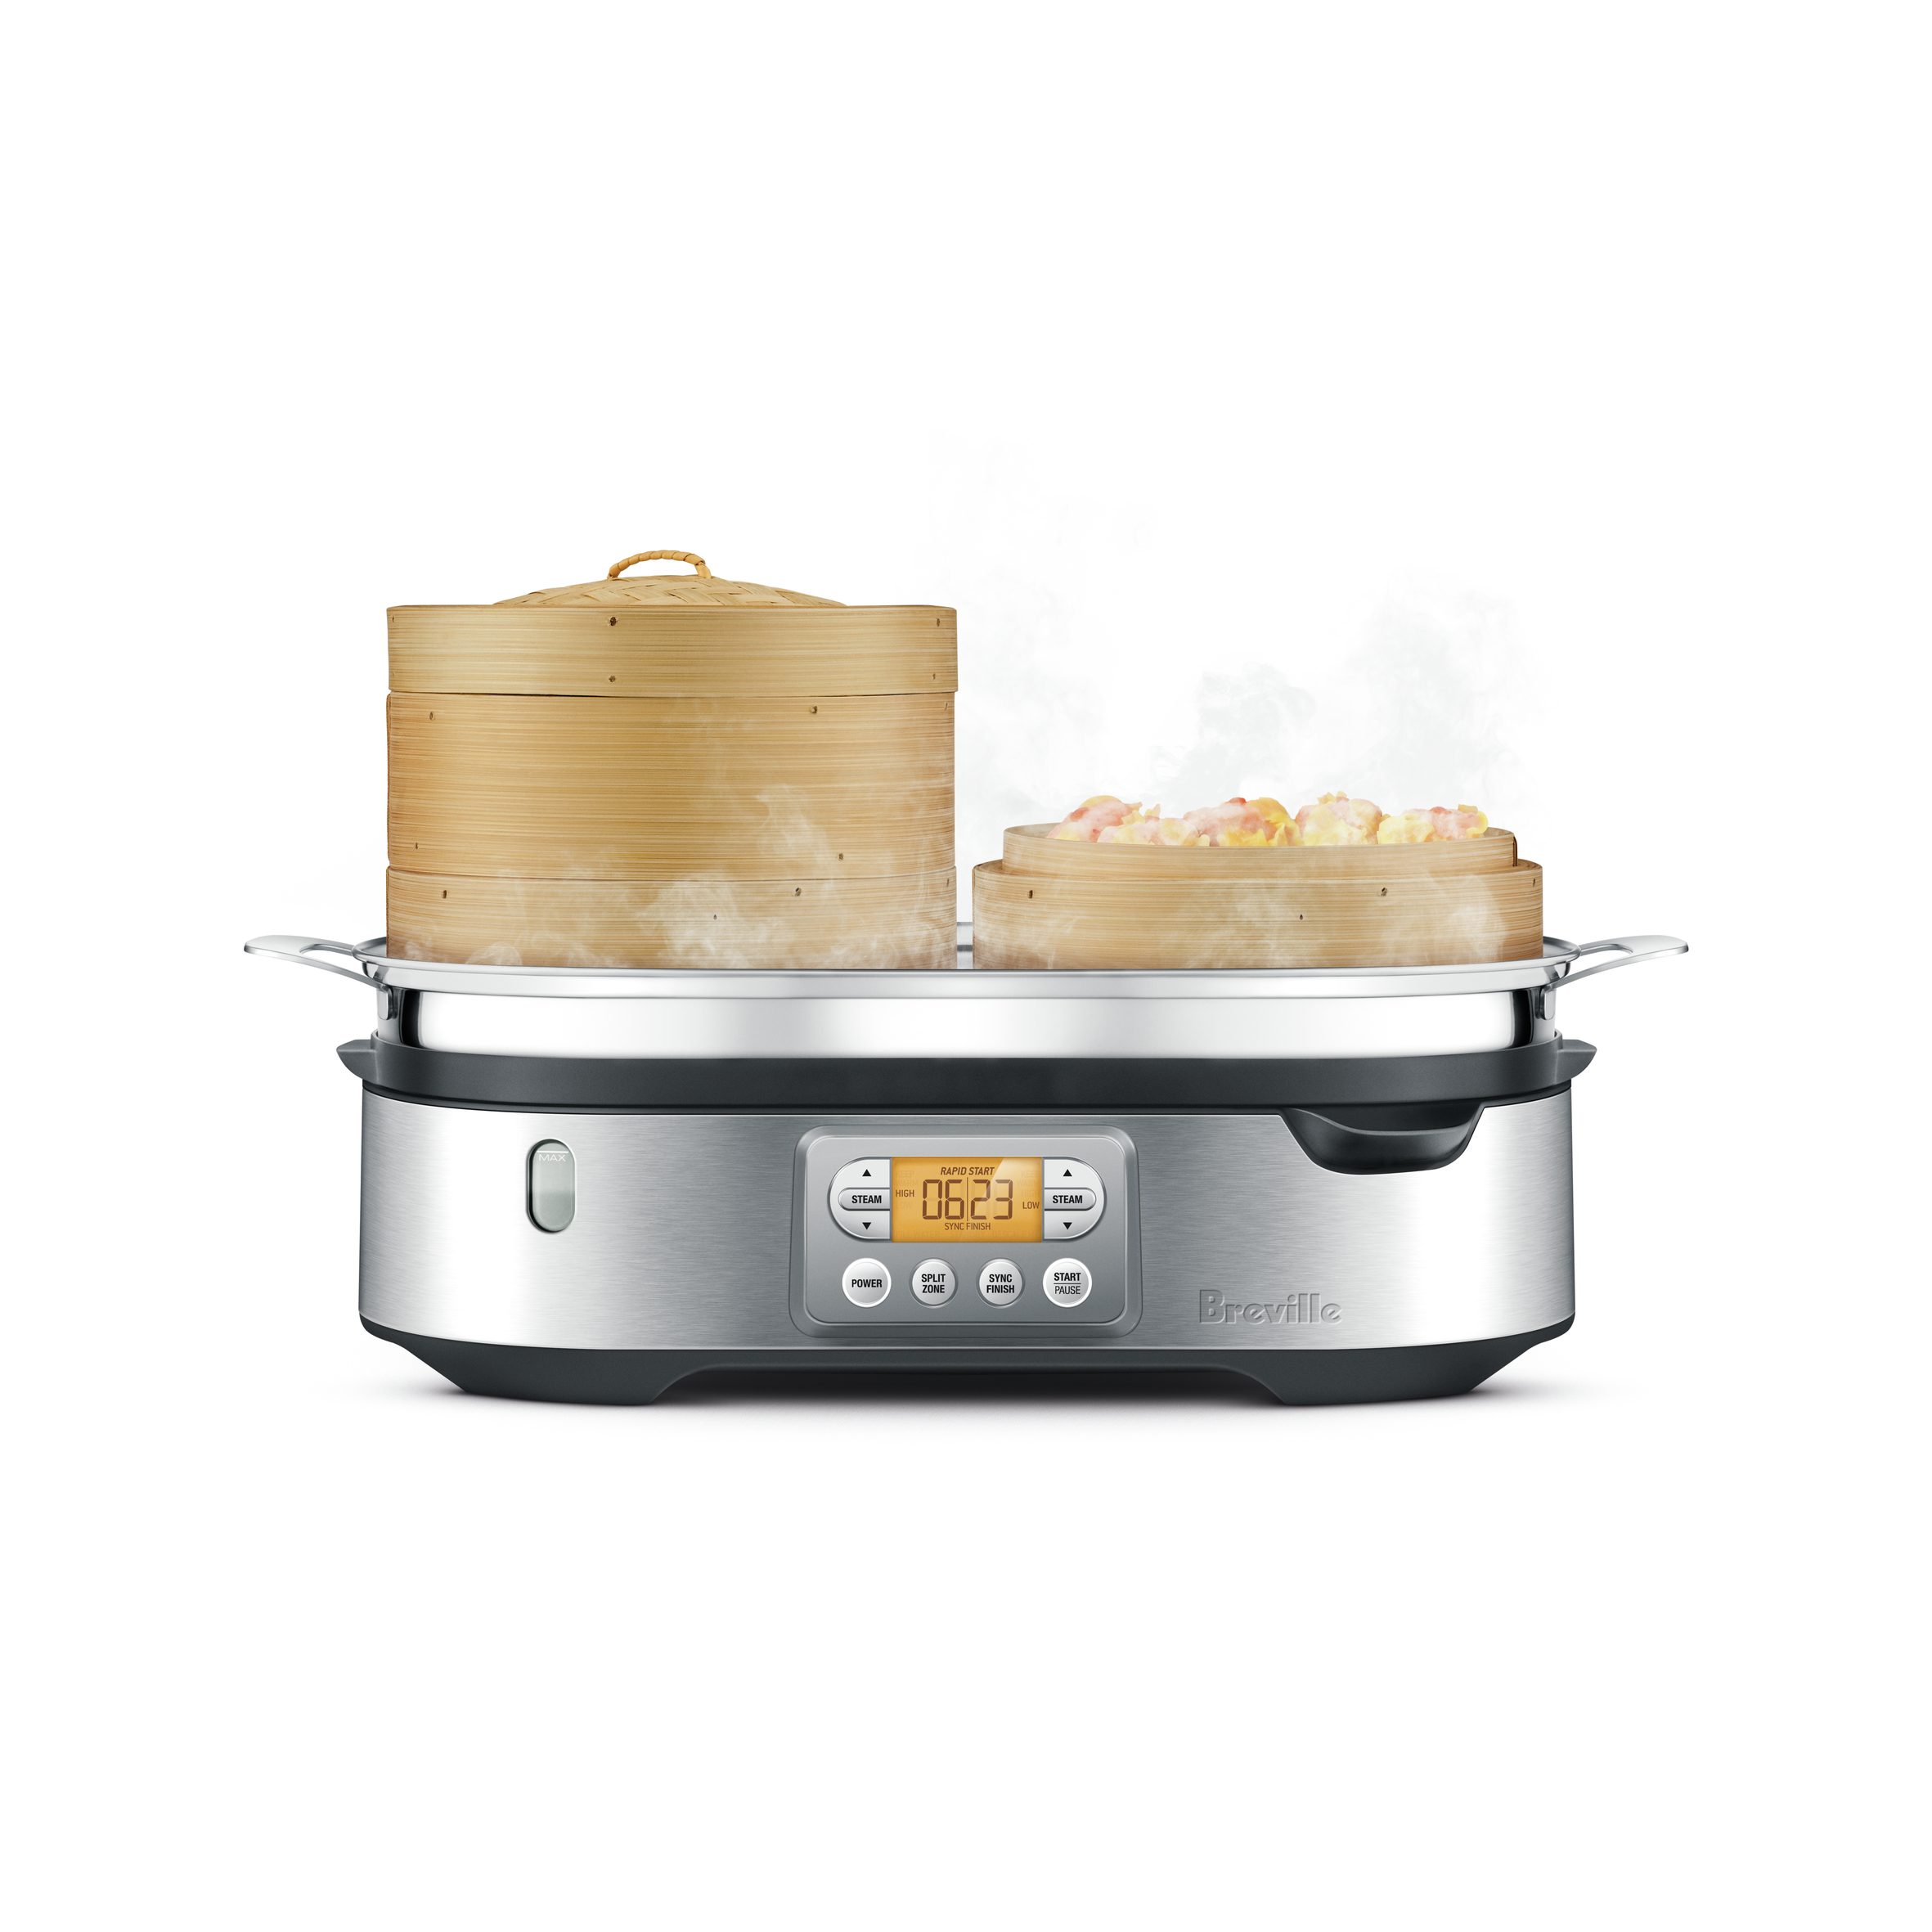 The Steam Zone™ Cooker In Brushed Stainless Steel with bamboo baskets